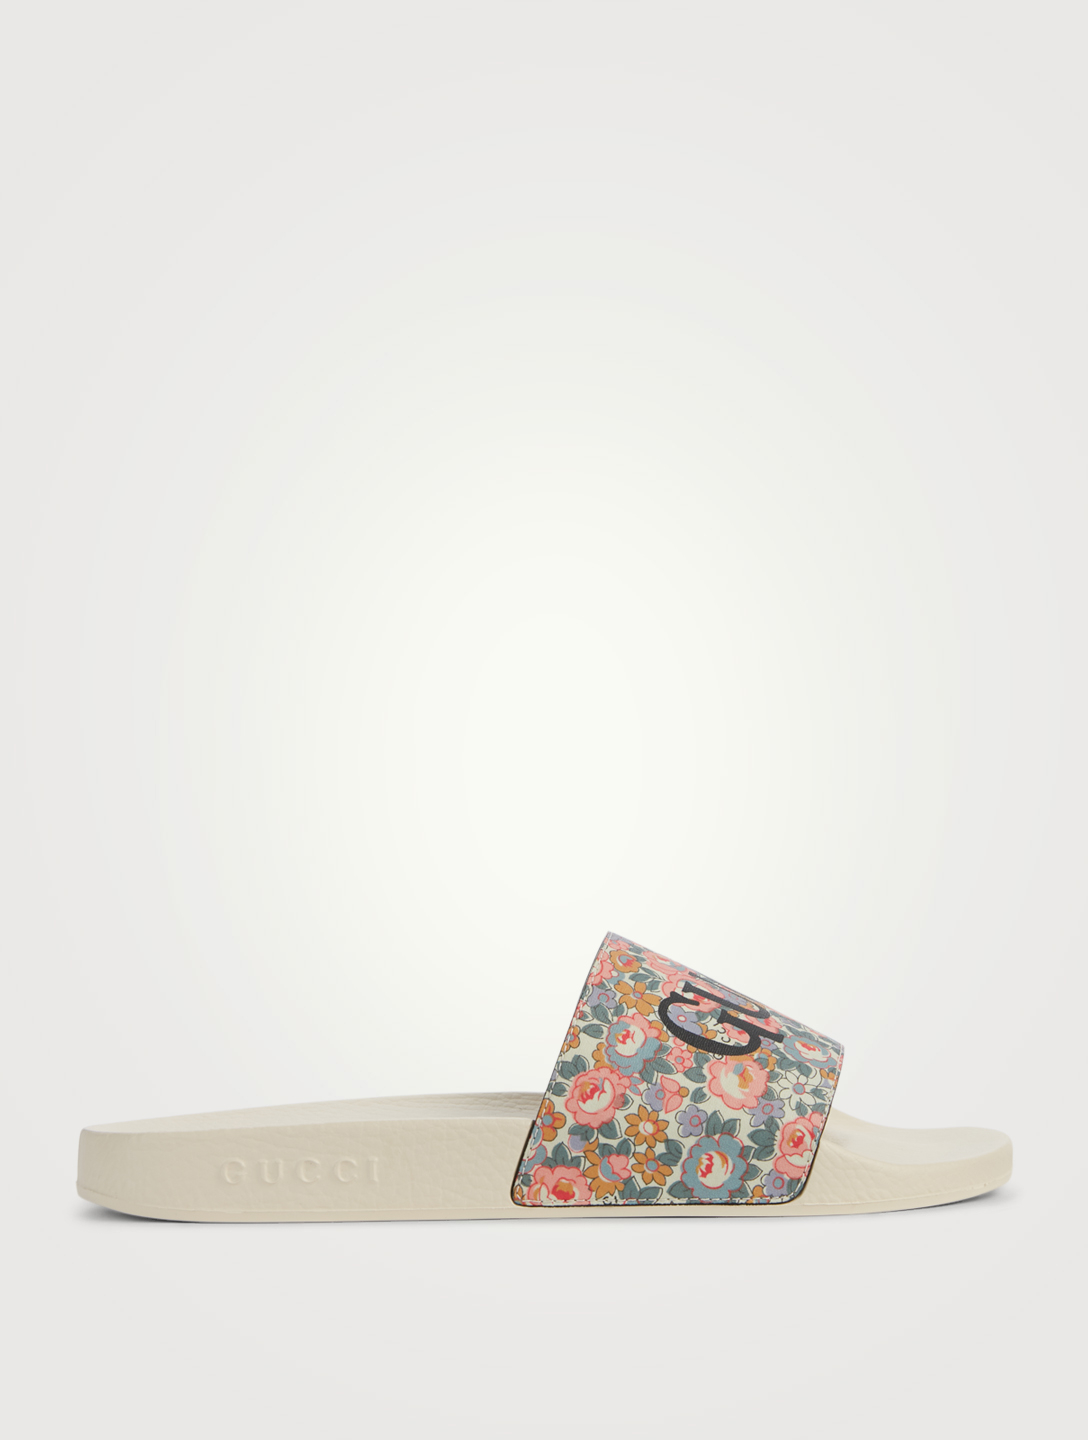 GUCCI Liberty Rubber Logo Slide Sandals Men's Pink